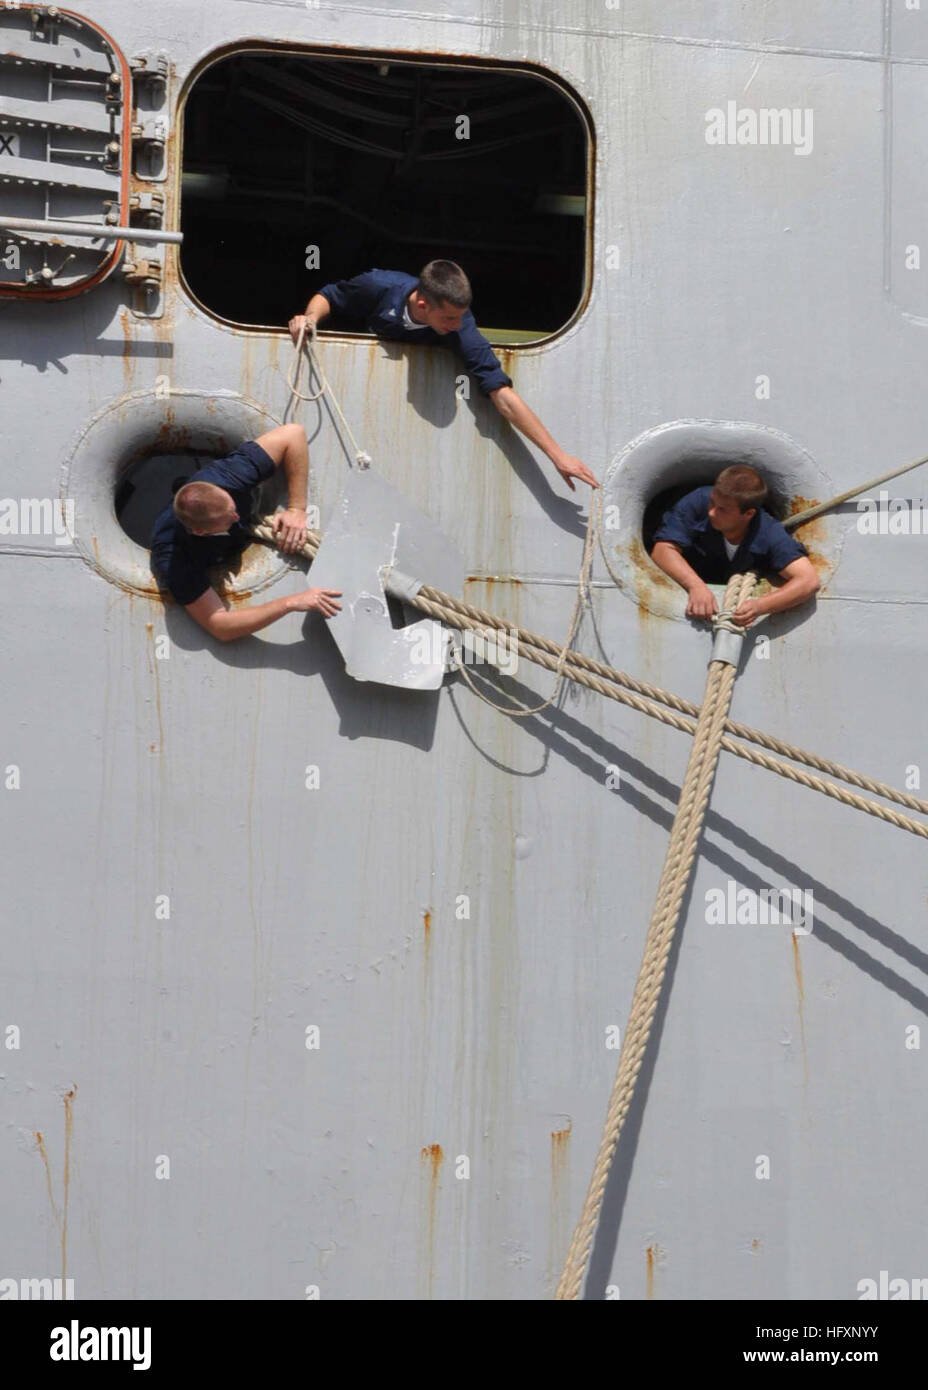 100804-N-6566M-015 GUANTANAMO BAY, Cuba (Aug. 4, 2010) Sailors aboard the amphibious assault ship USS Iwo Jima (LHD Stock Photo